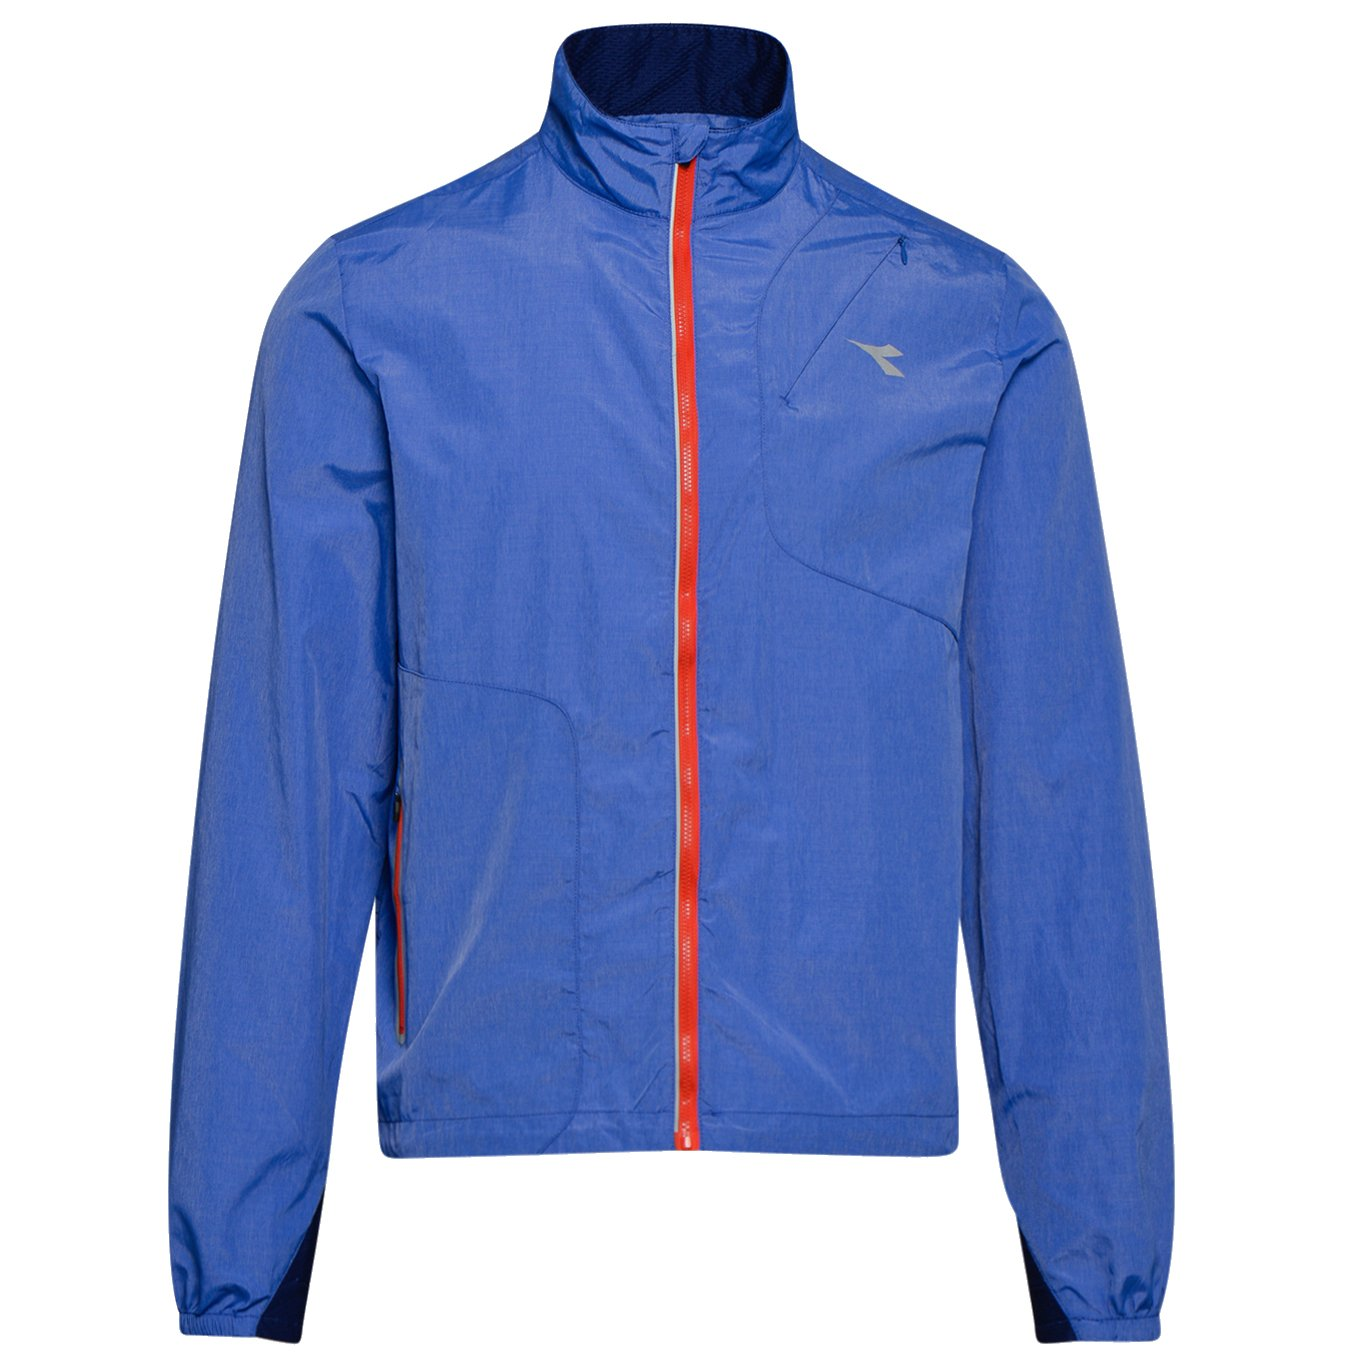 DIADORA WIND JACKET